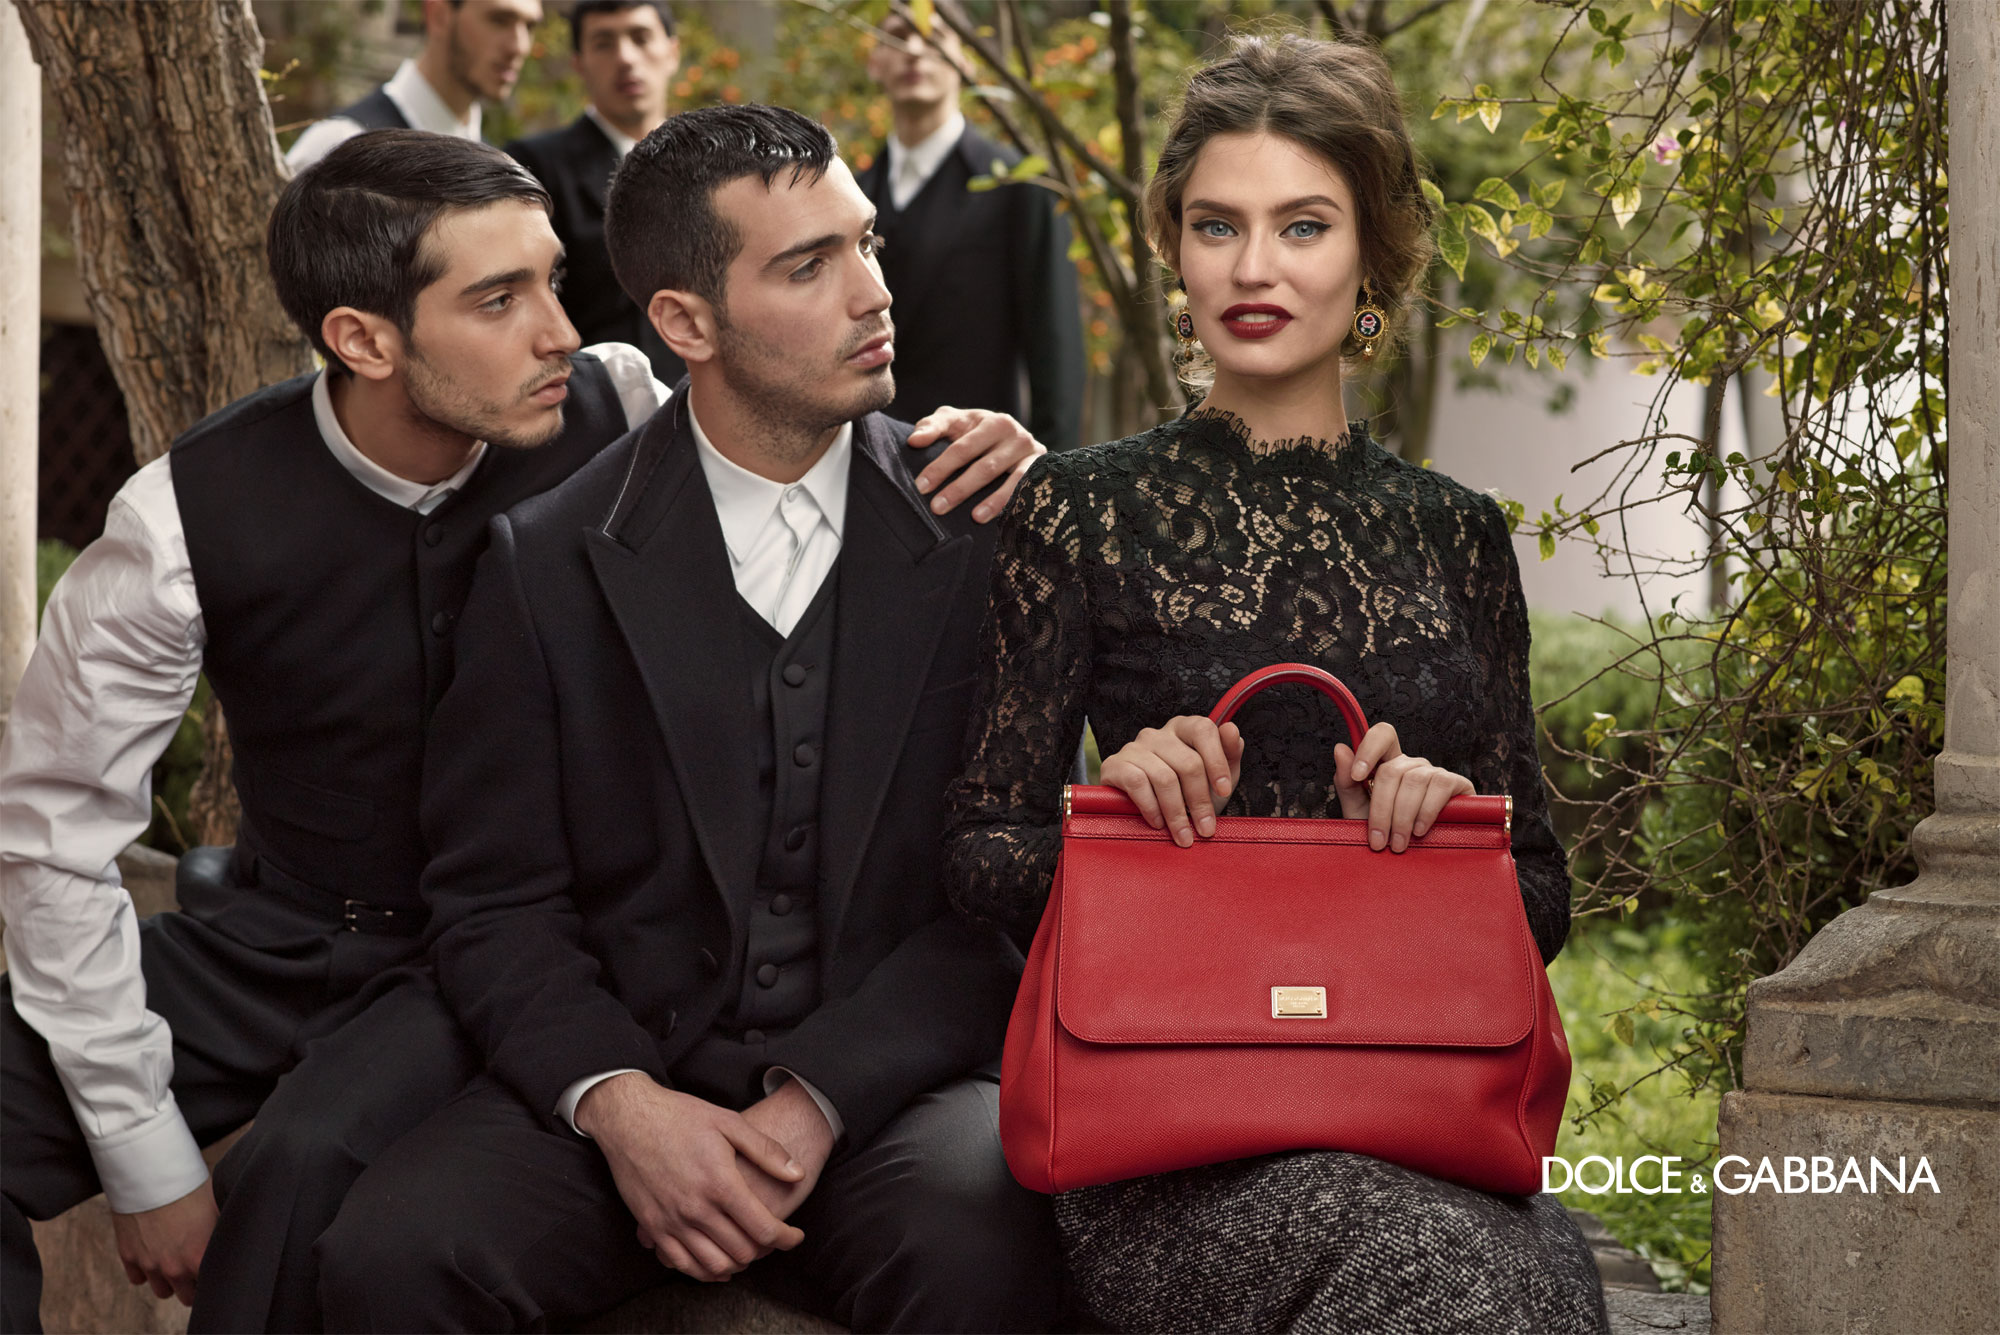 Dolce And Gabbana Fw 2014 Women Adv Campaign 16